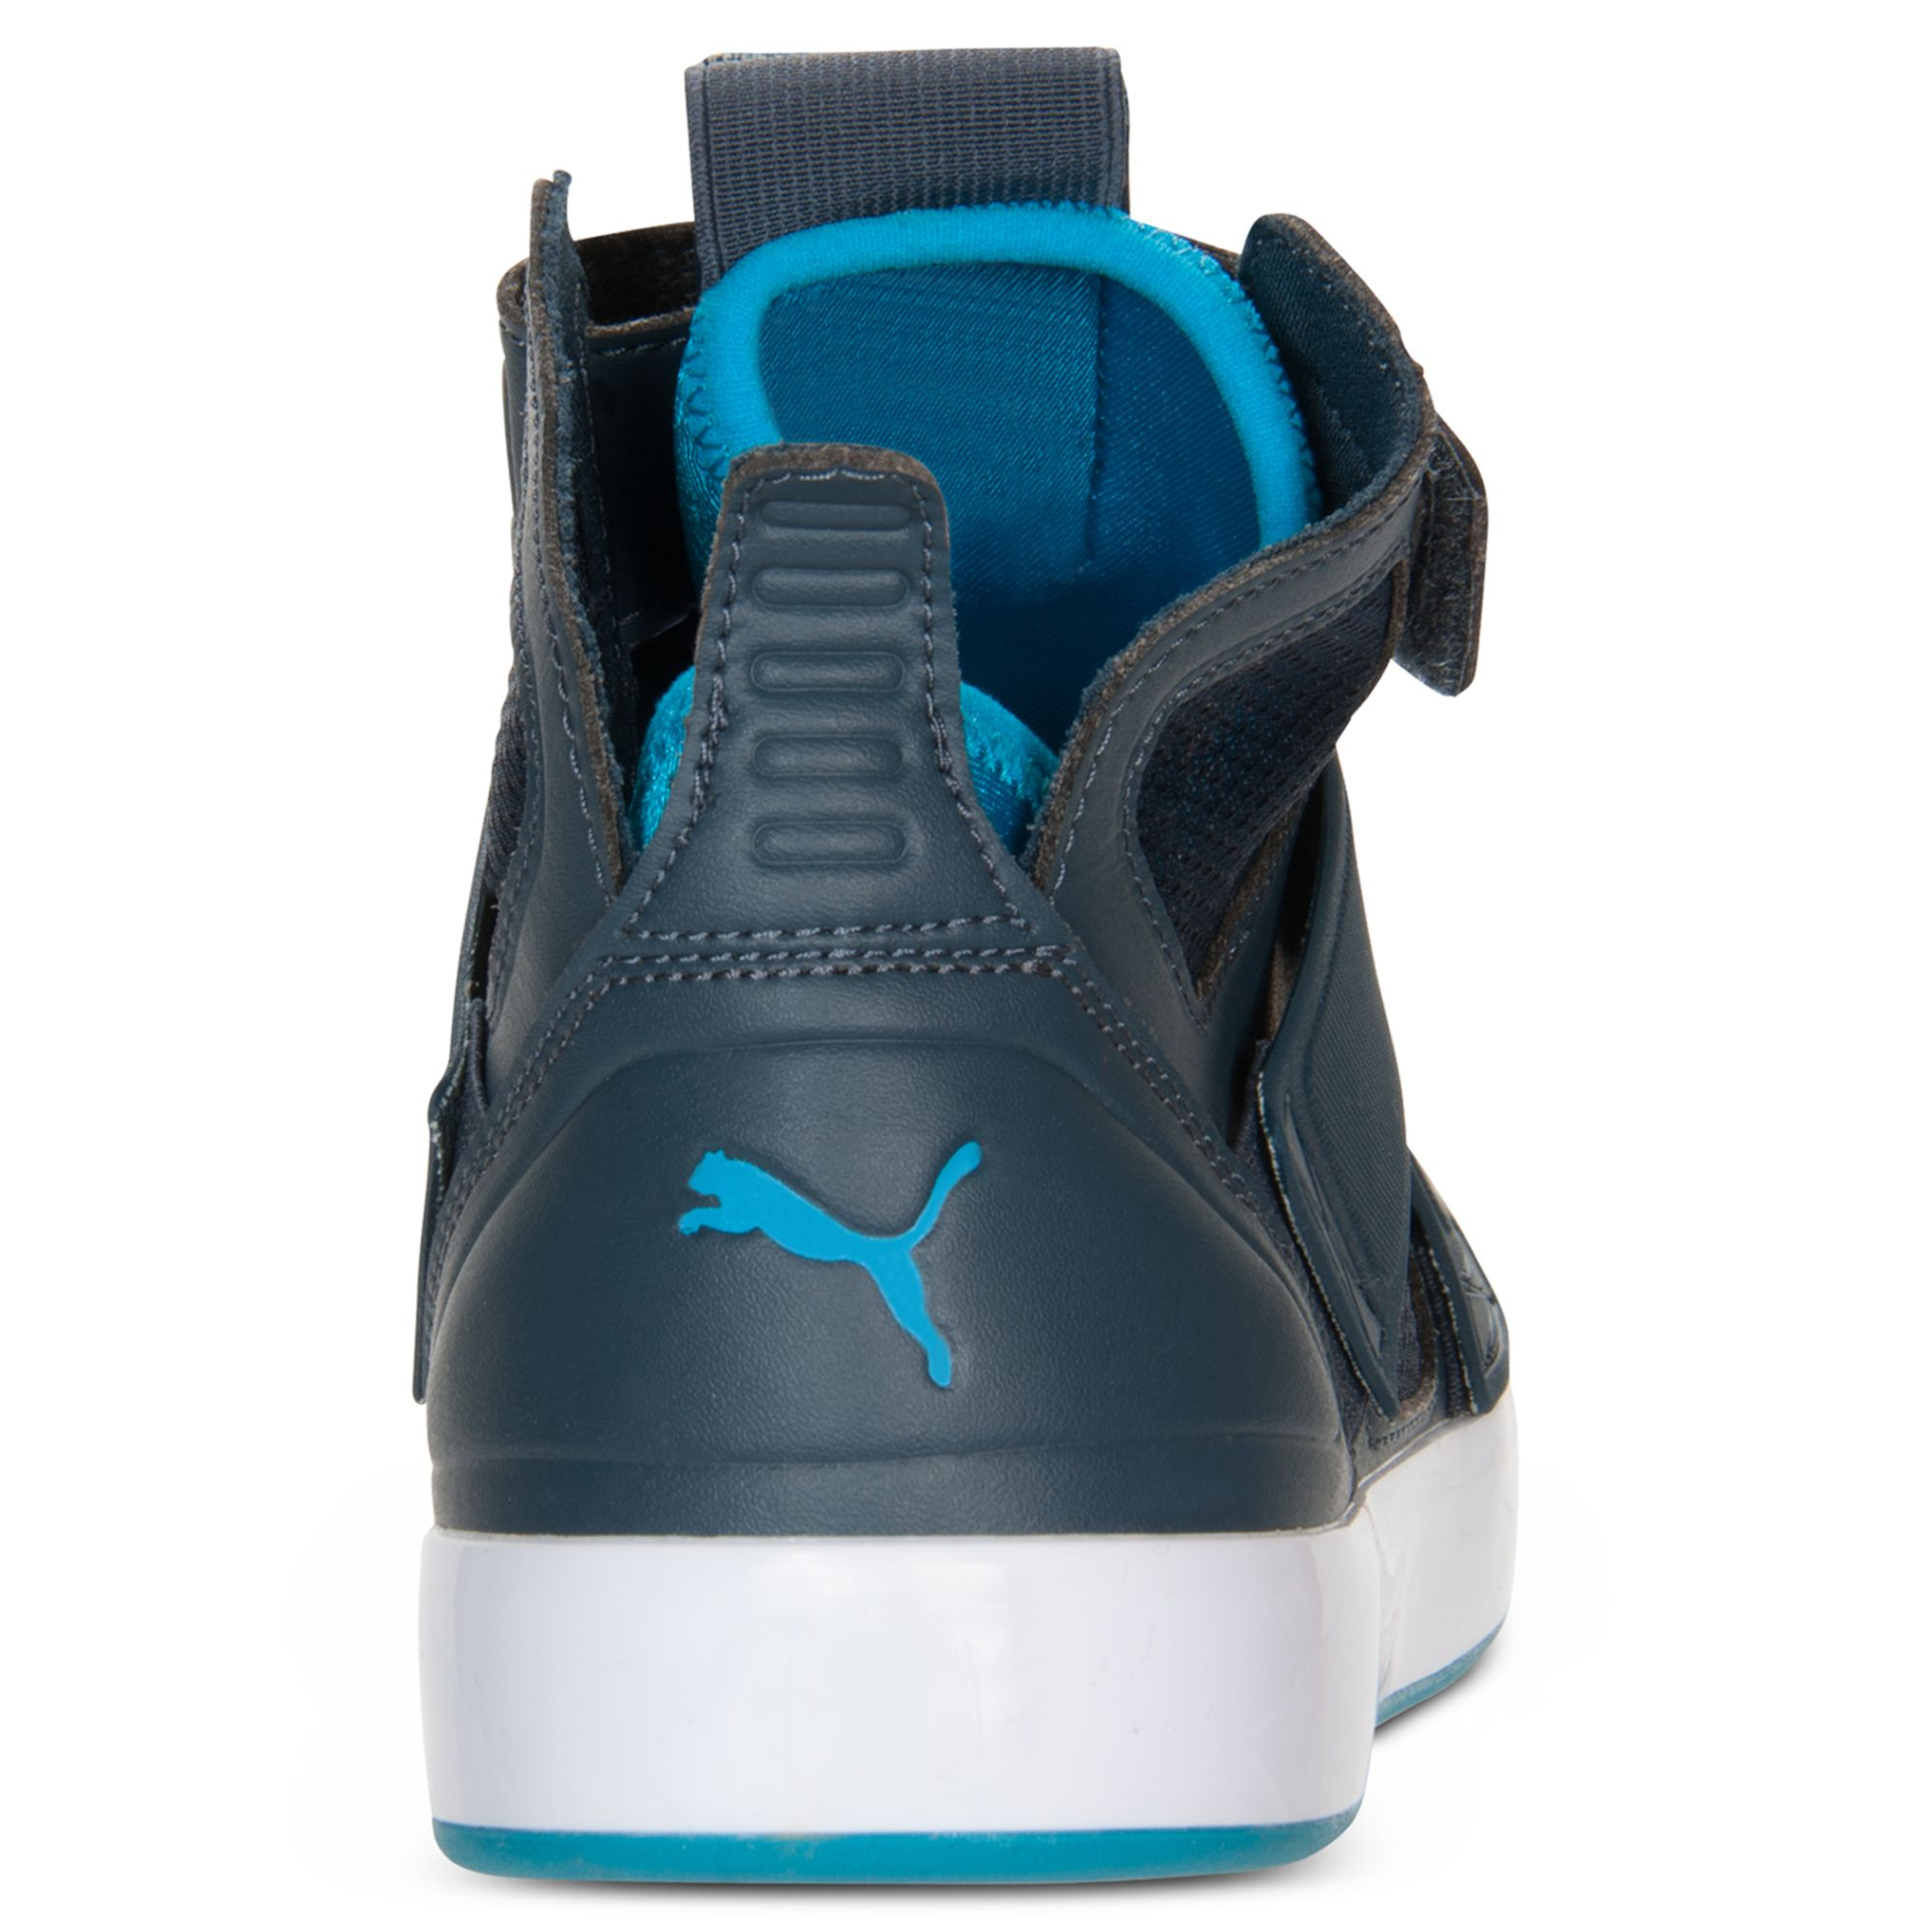 puma sneakers for men high top rmitbuddhistsocietyorg